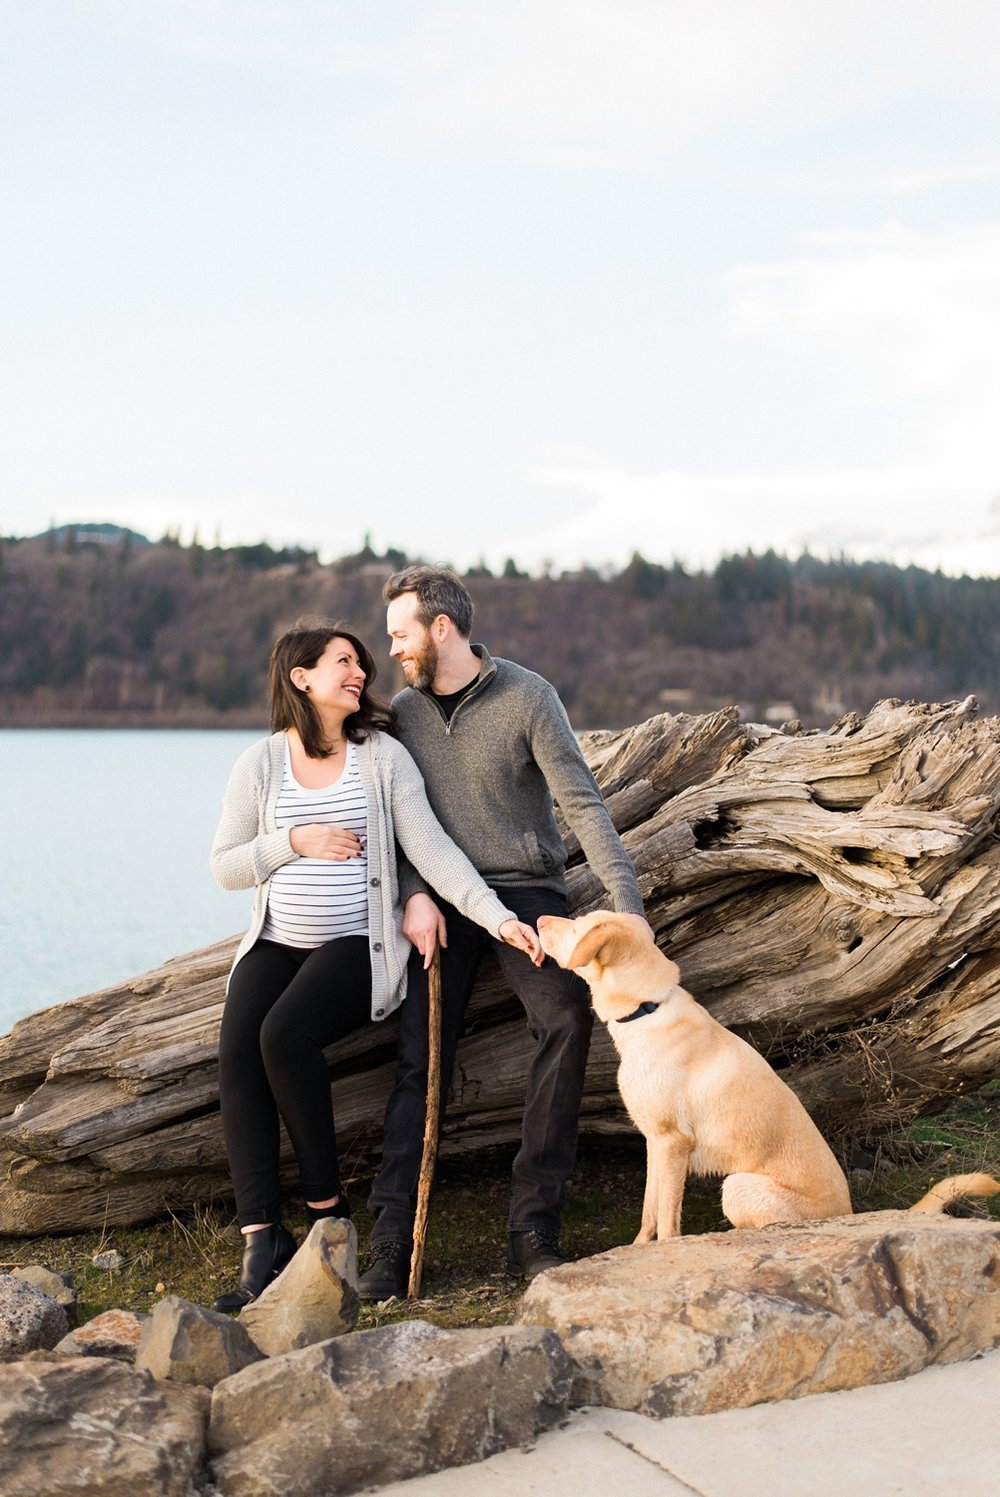 hood-river-maternity-photos-with-dog-columbia-river-gorge-shelley-marie-photo-120_cr.jpg